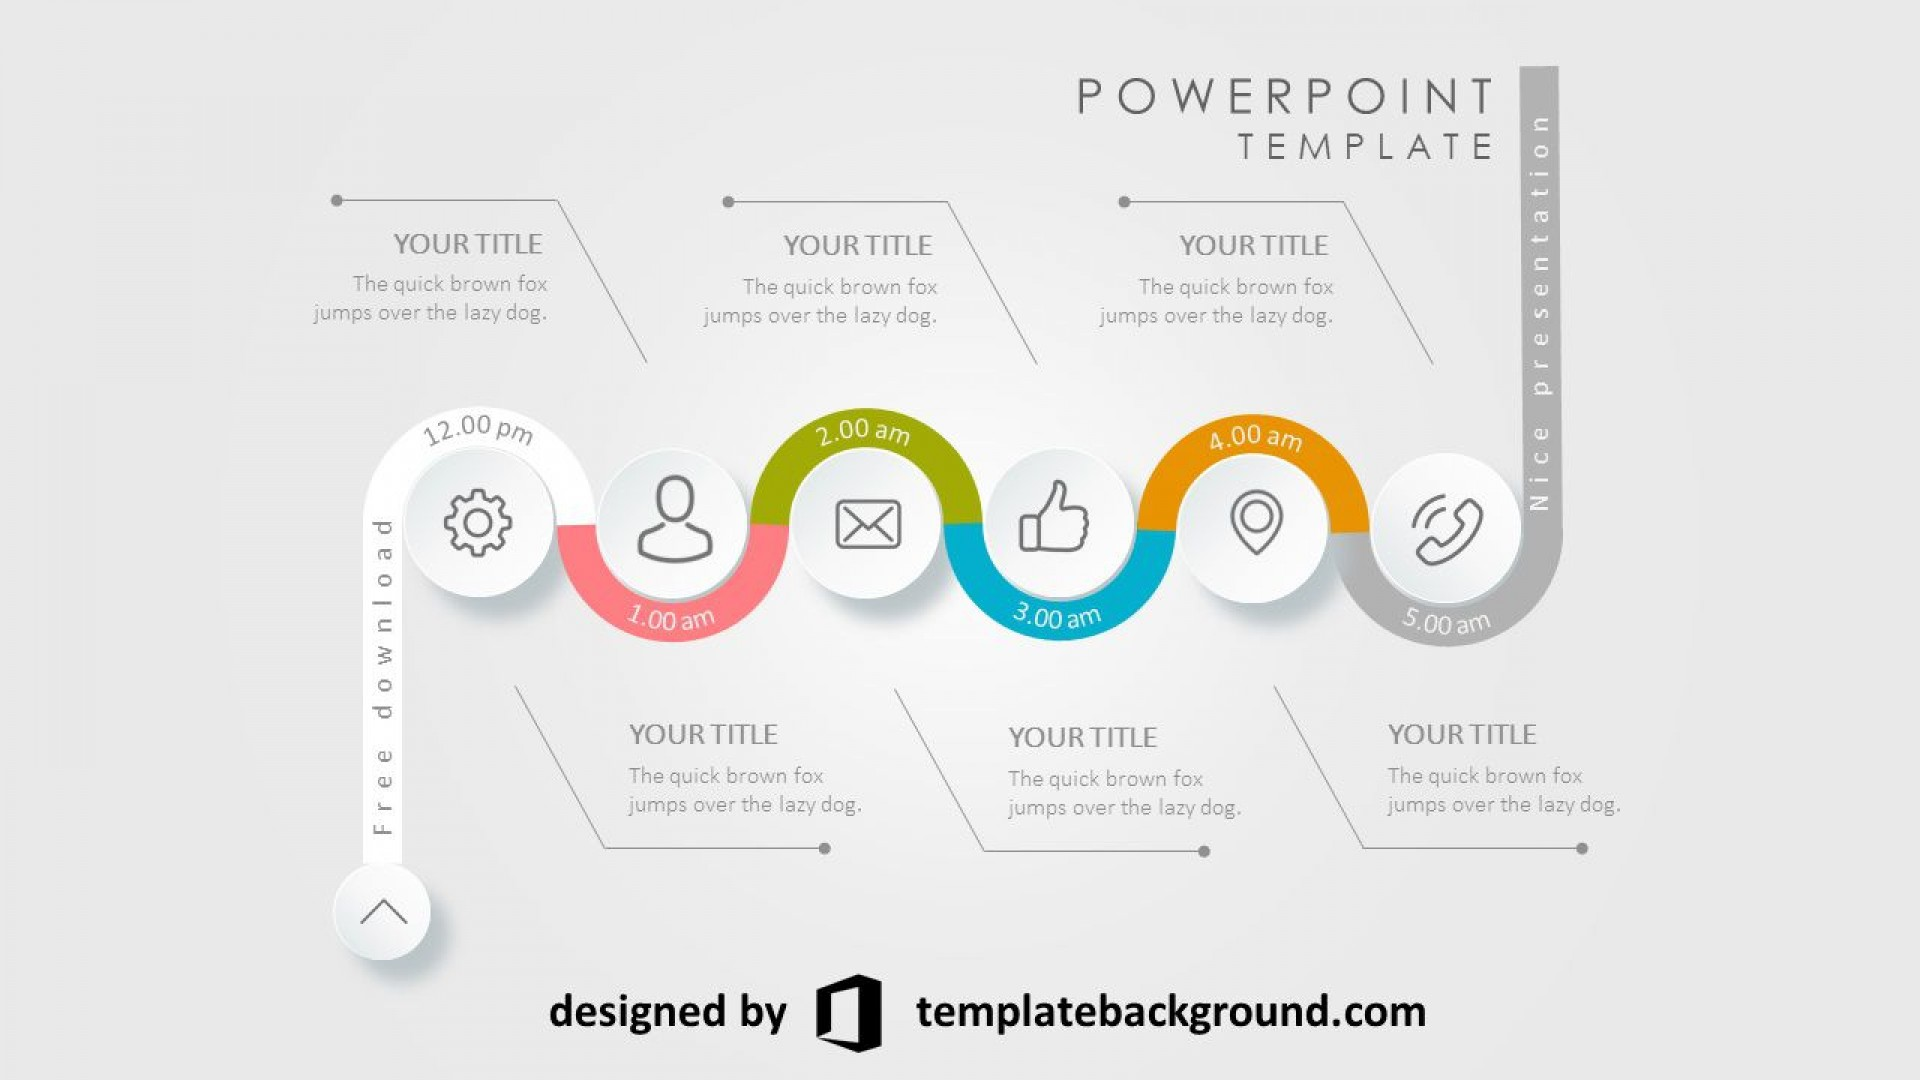 003 Incredible Free Downloadable Powerpoint Template High Resolution  Templates Download Animated Background Design Theme1920